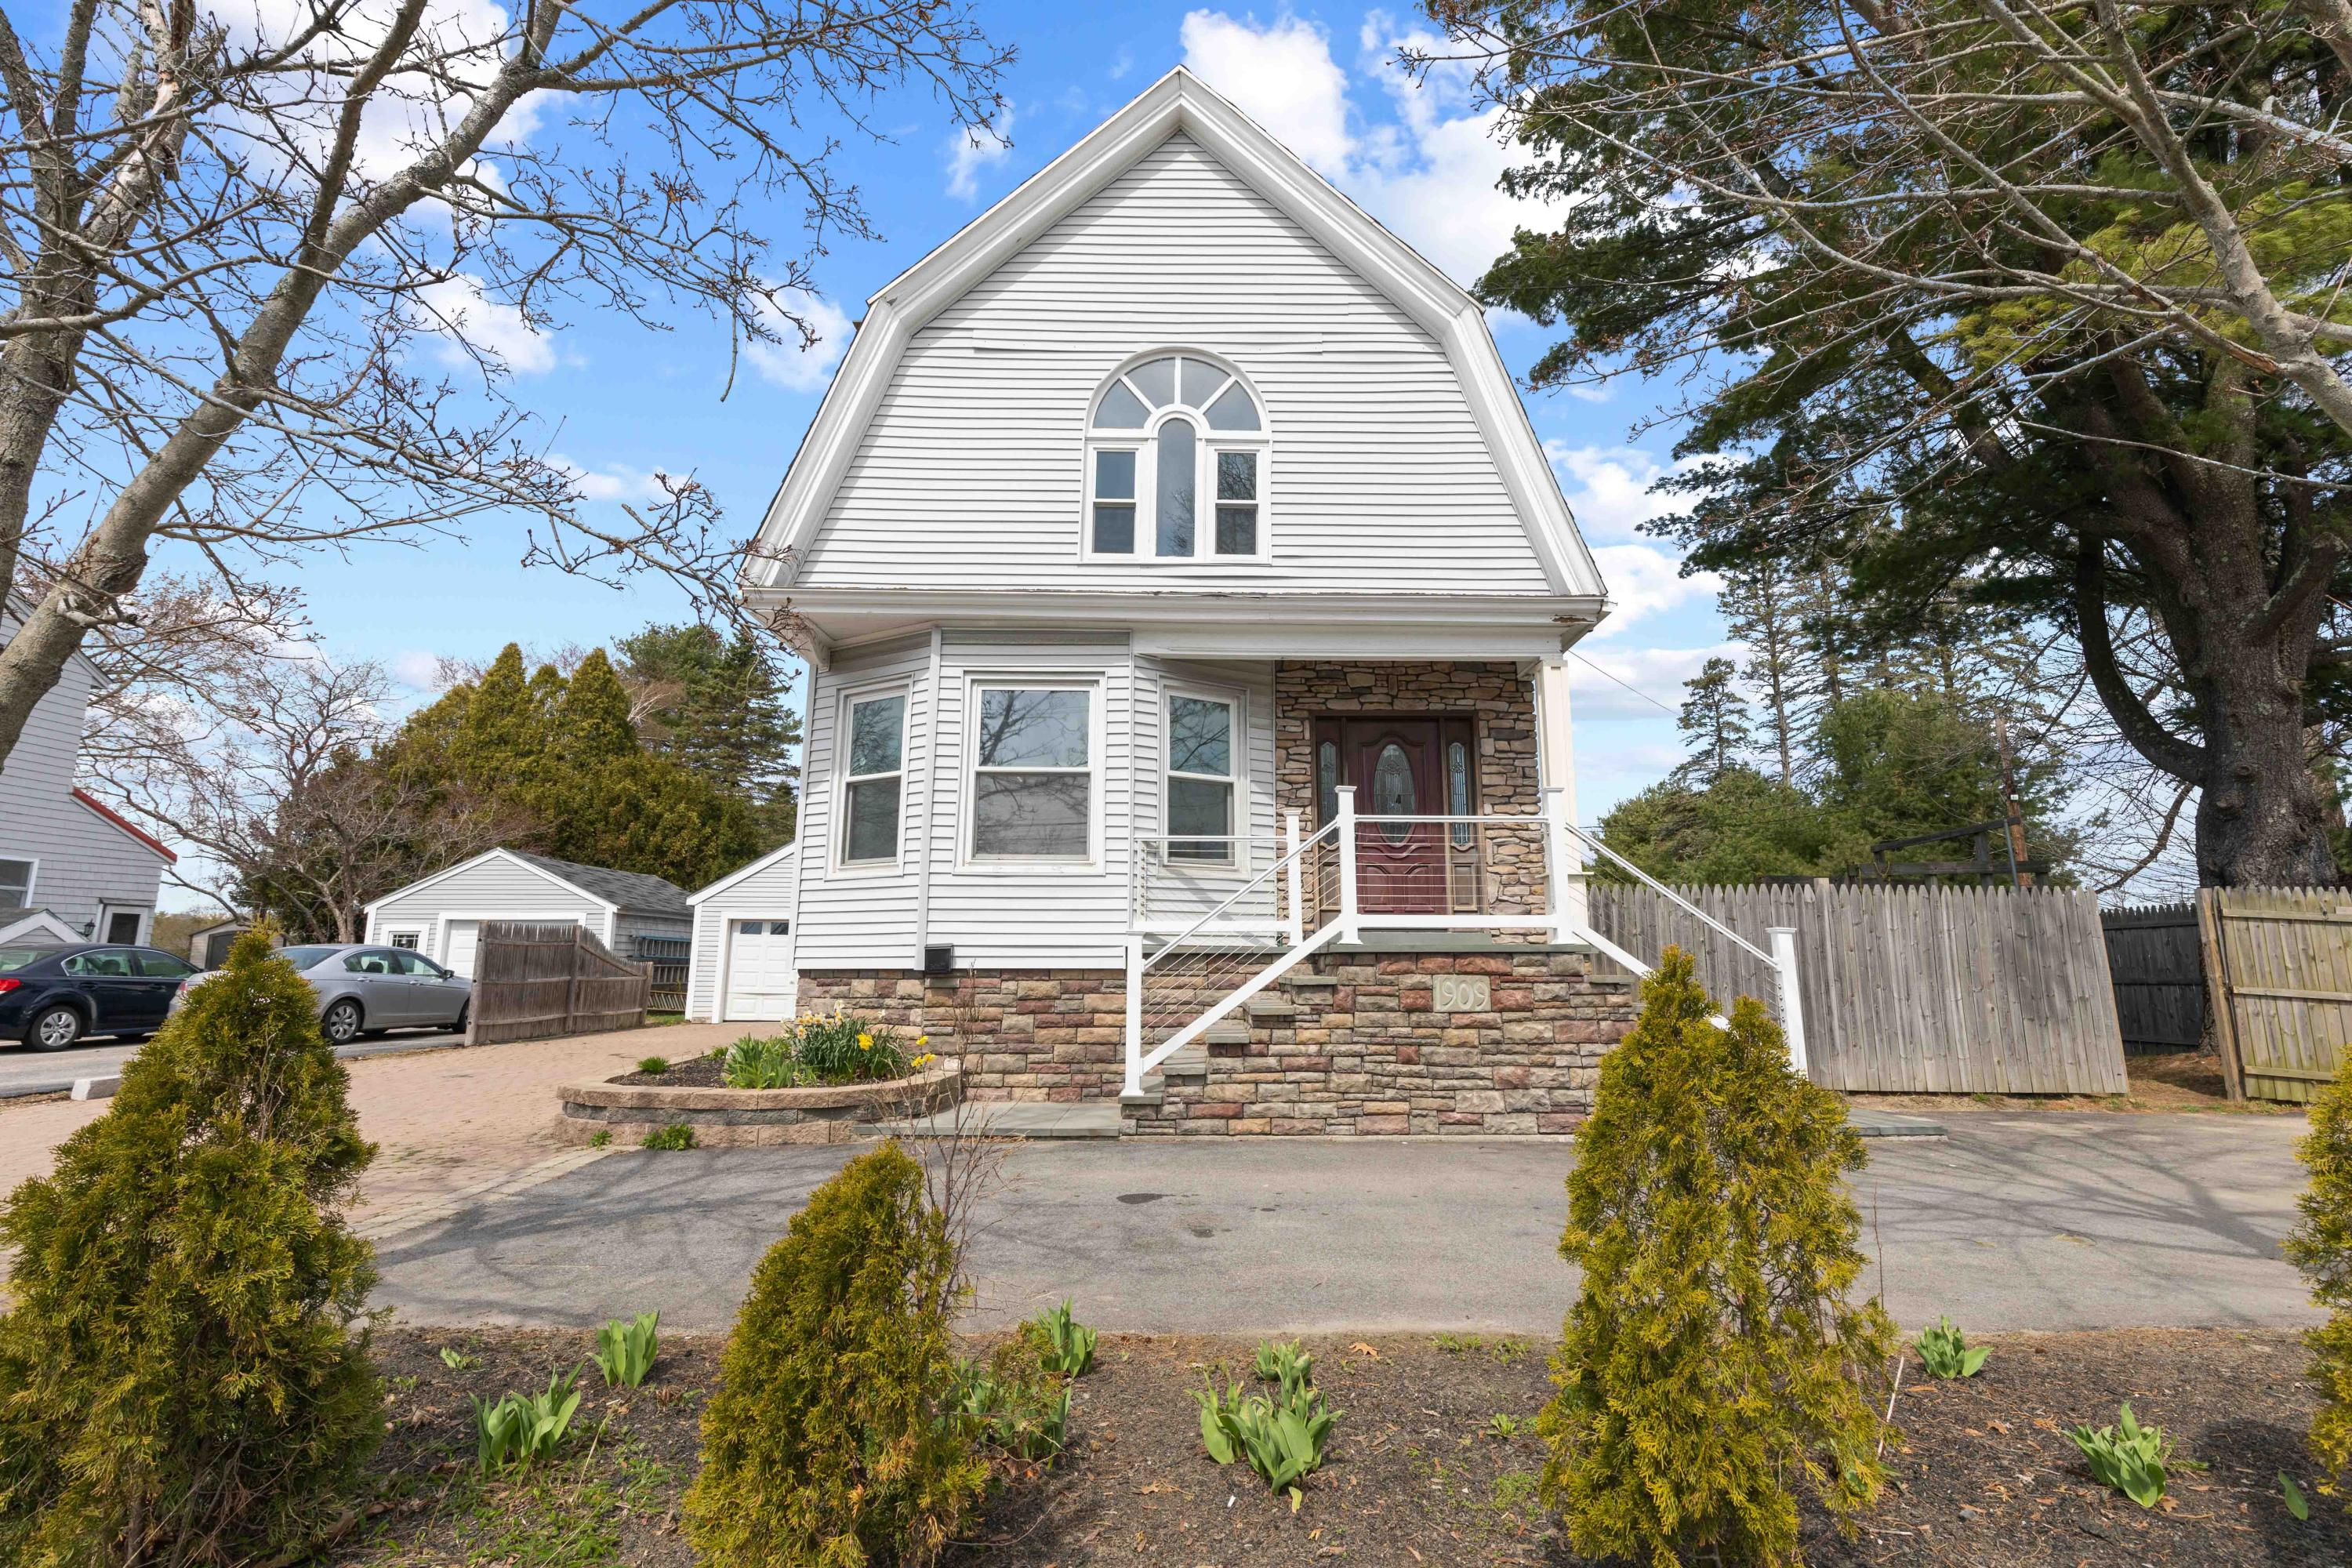 Main image for MLS listing 1488377